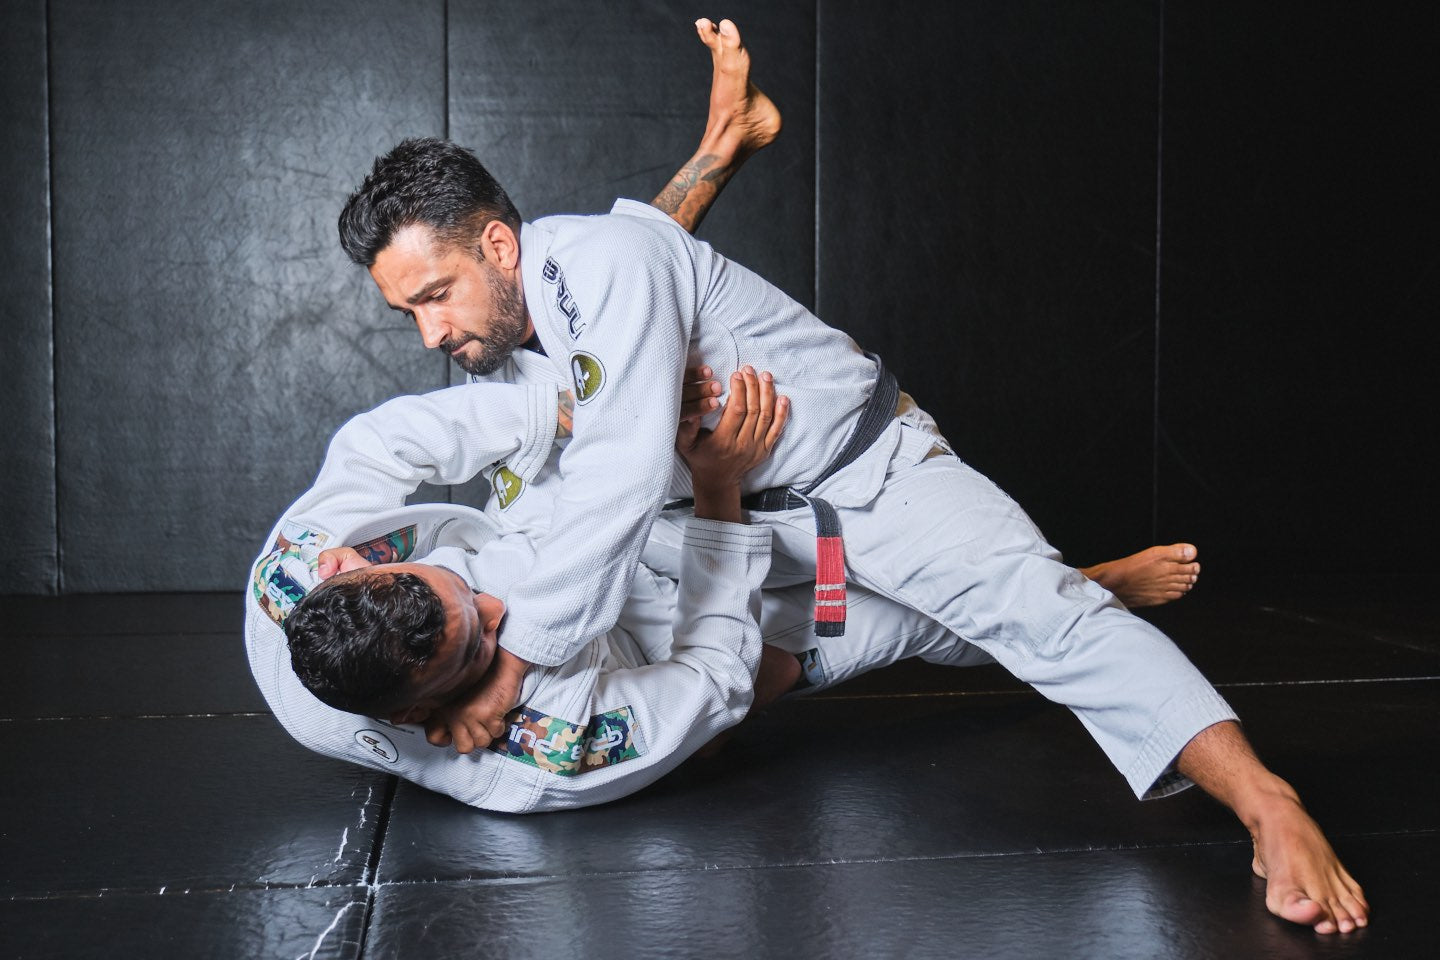 Cesar Lima BJJ Technique